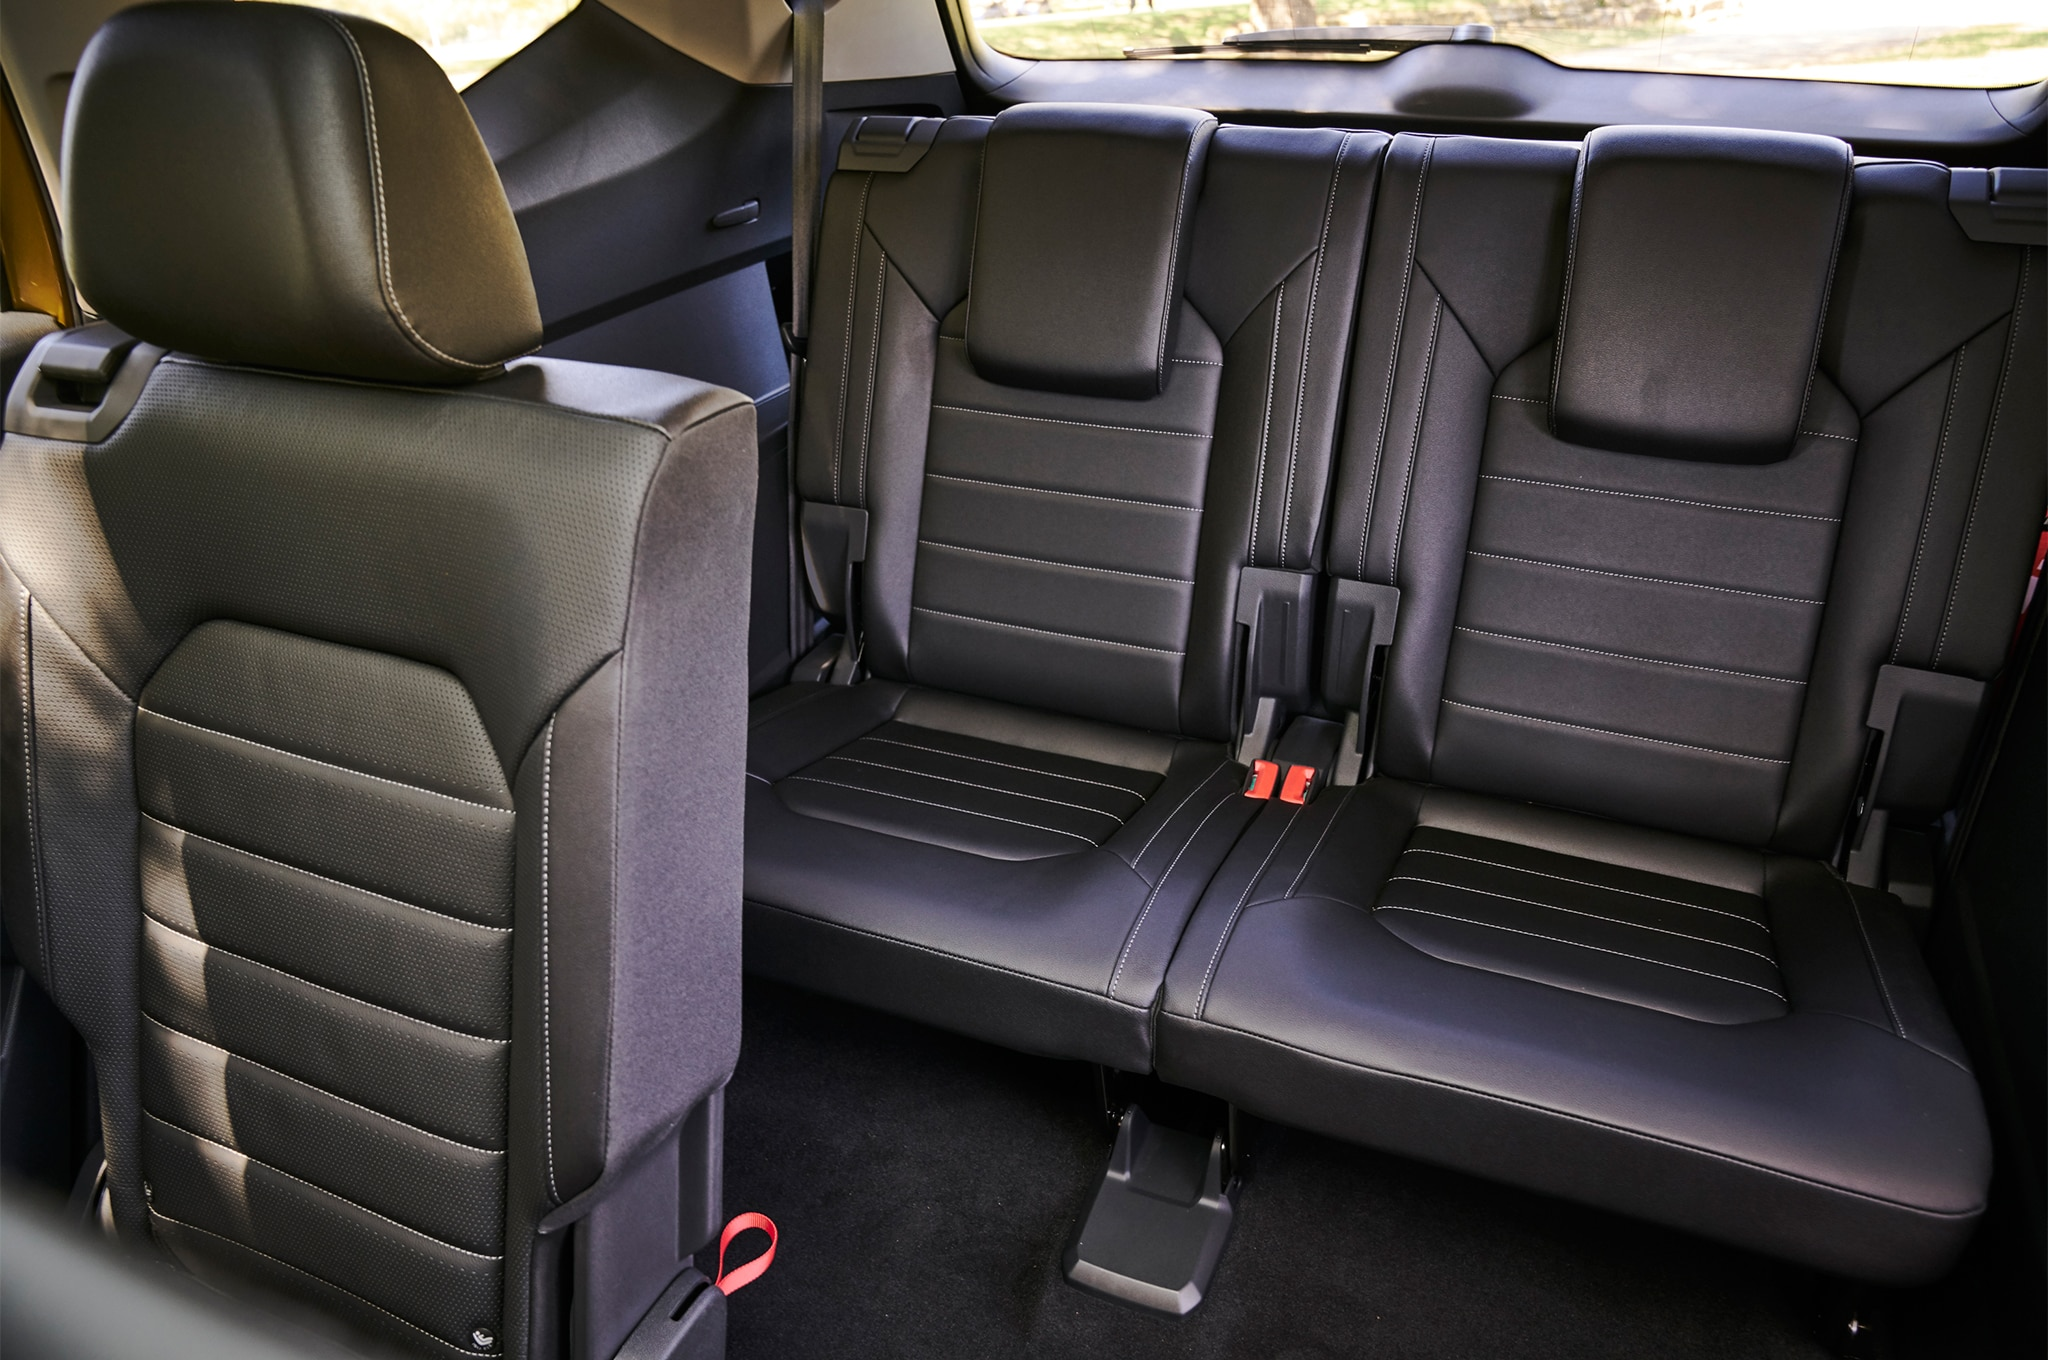 Ford Flex Bench Seat For Sale